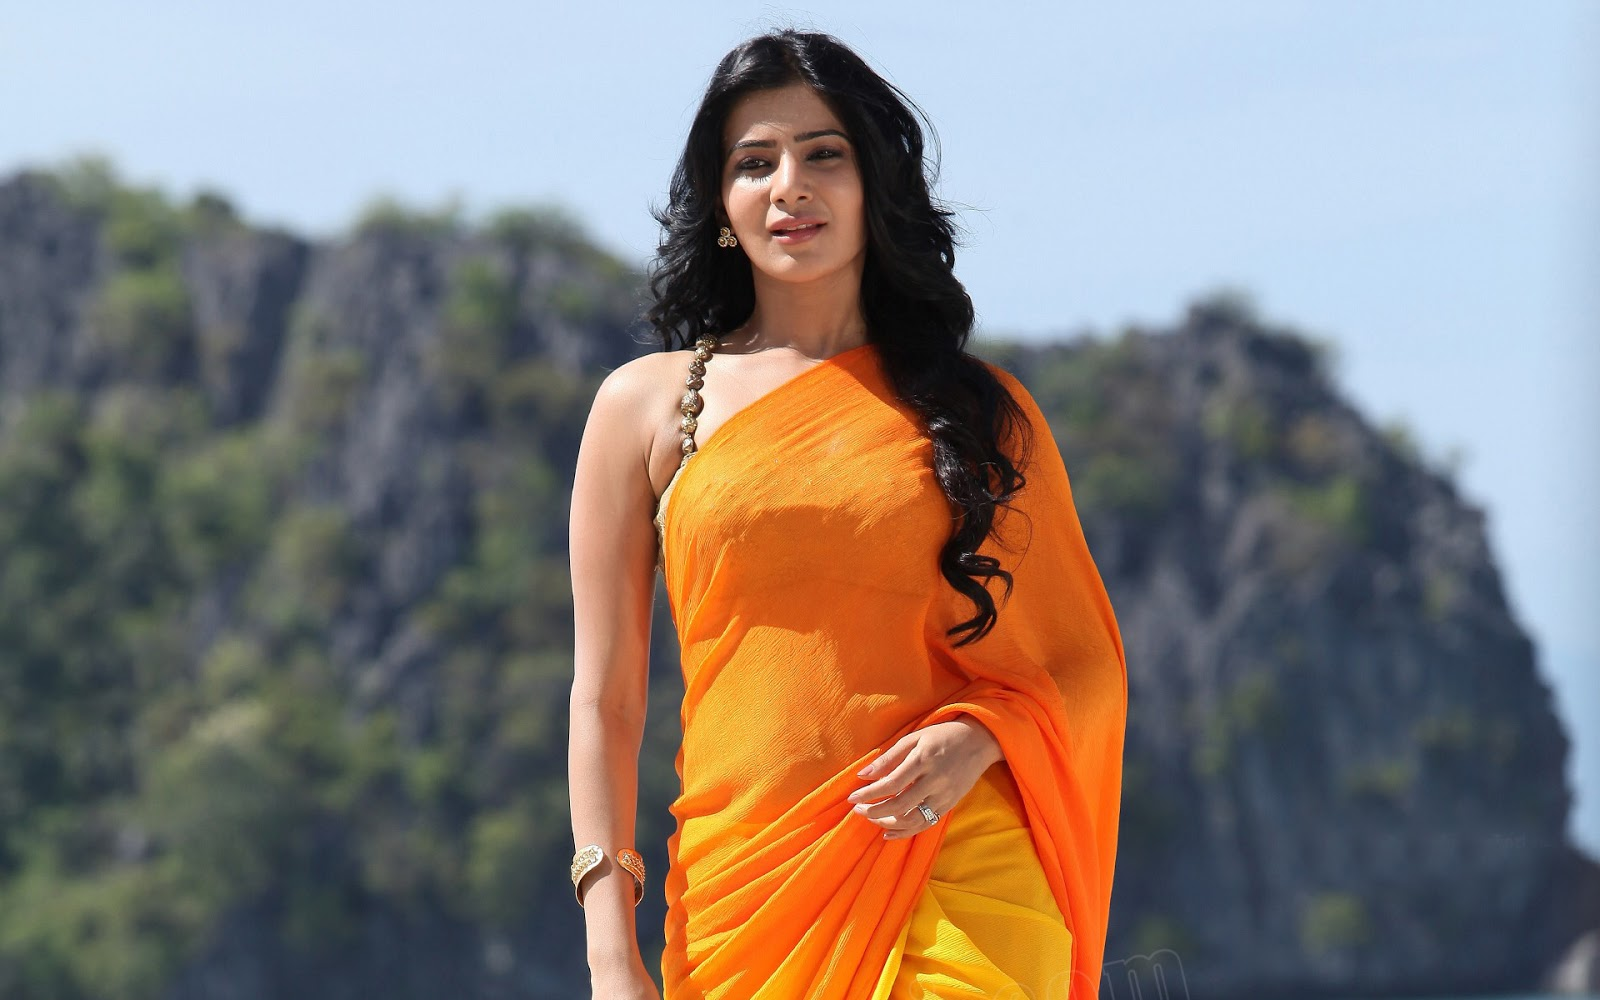 Samantha hot photos old collection 2 | Picture 6